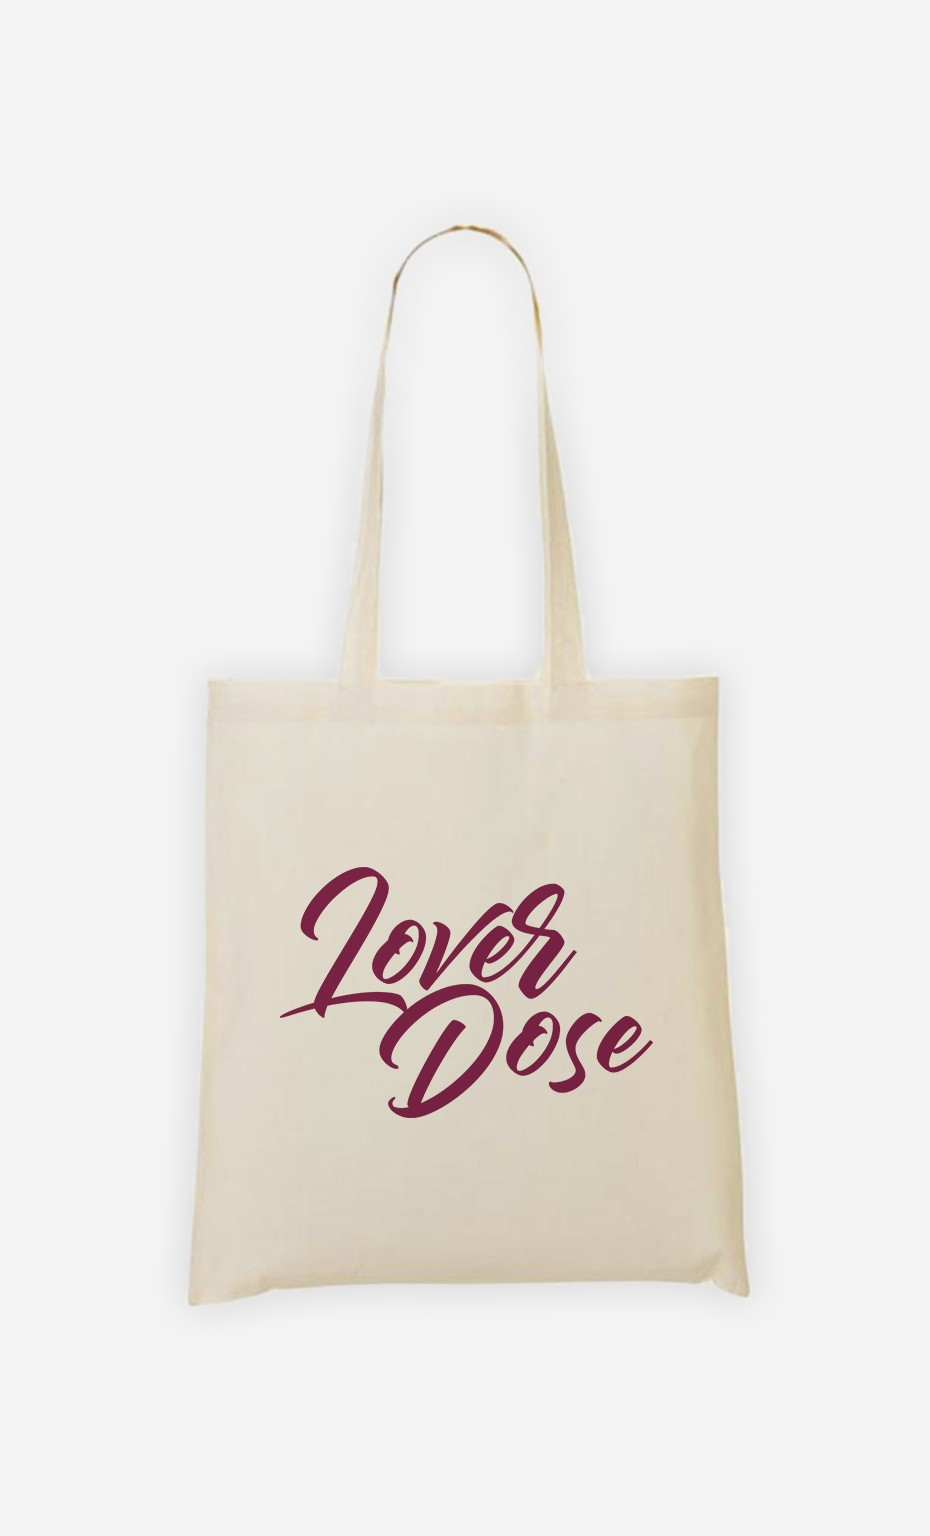 Tote Bag Loverdose